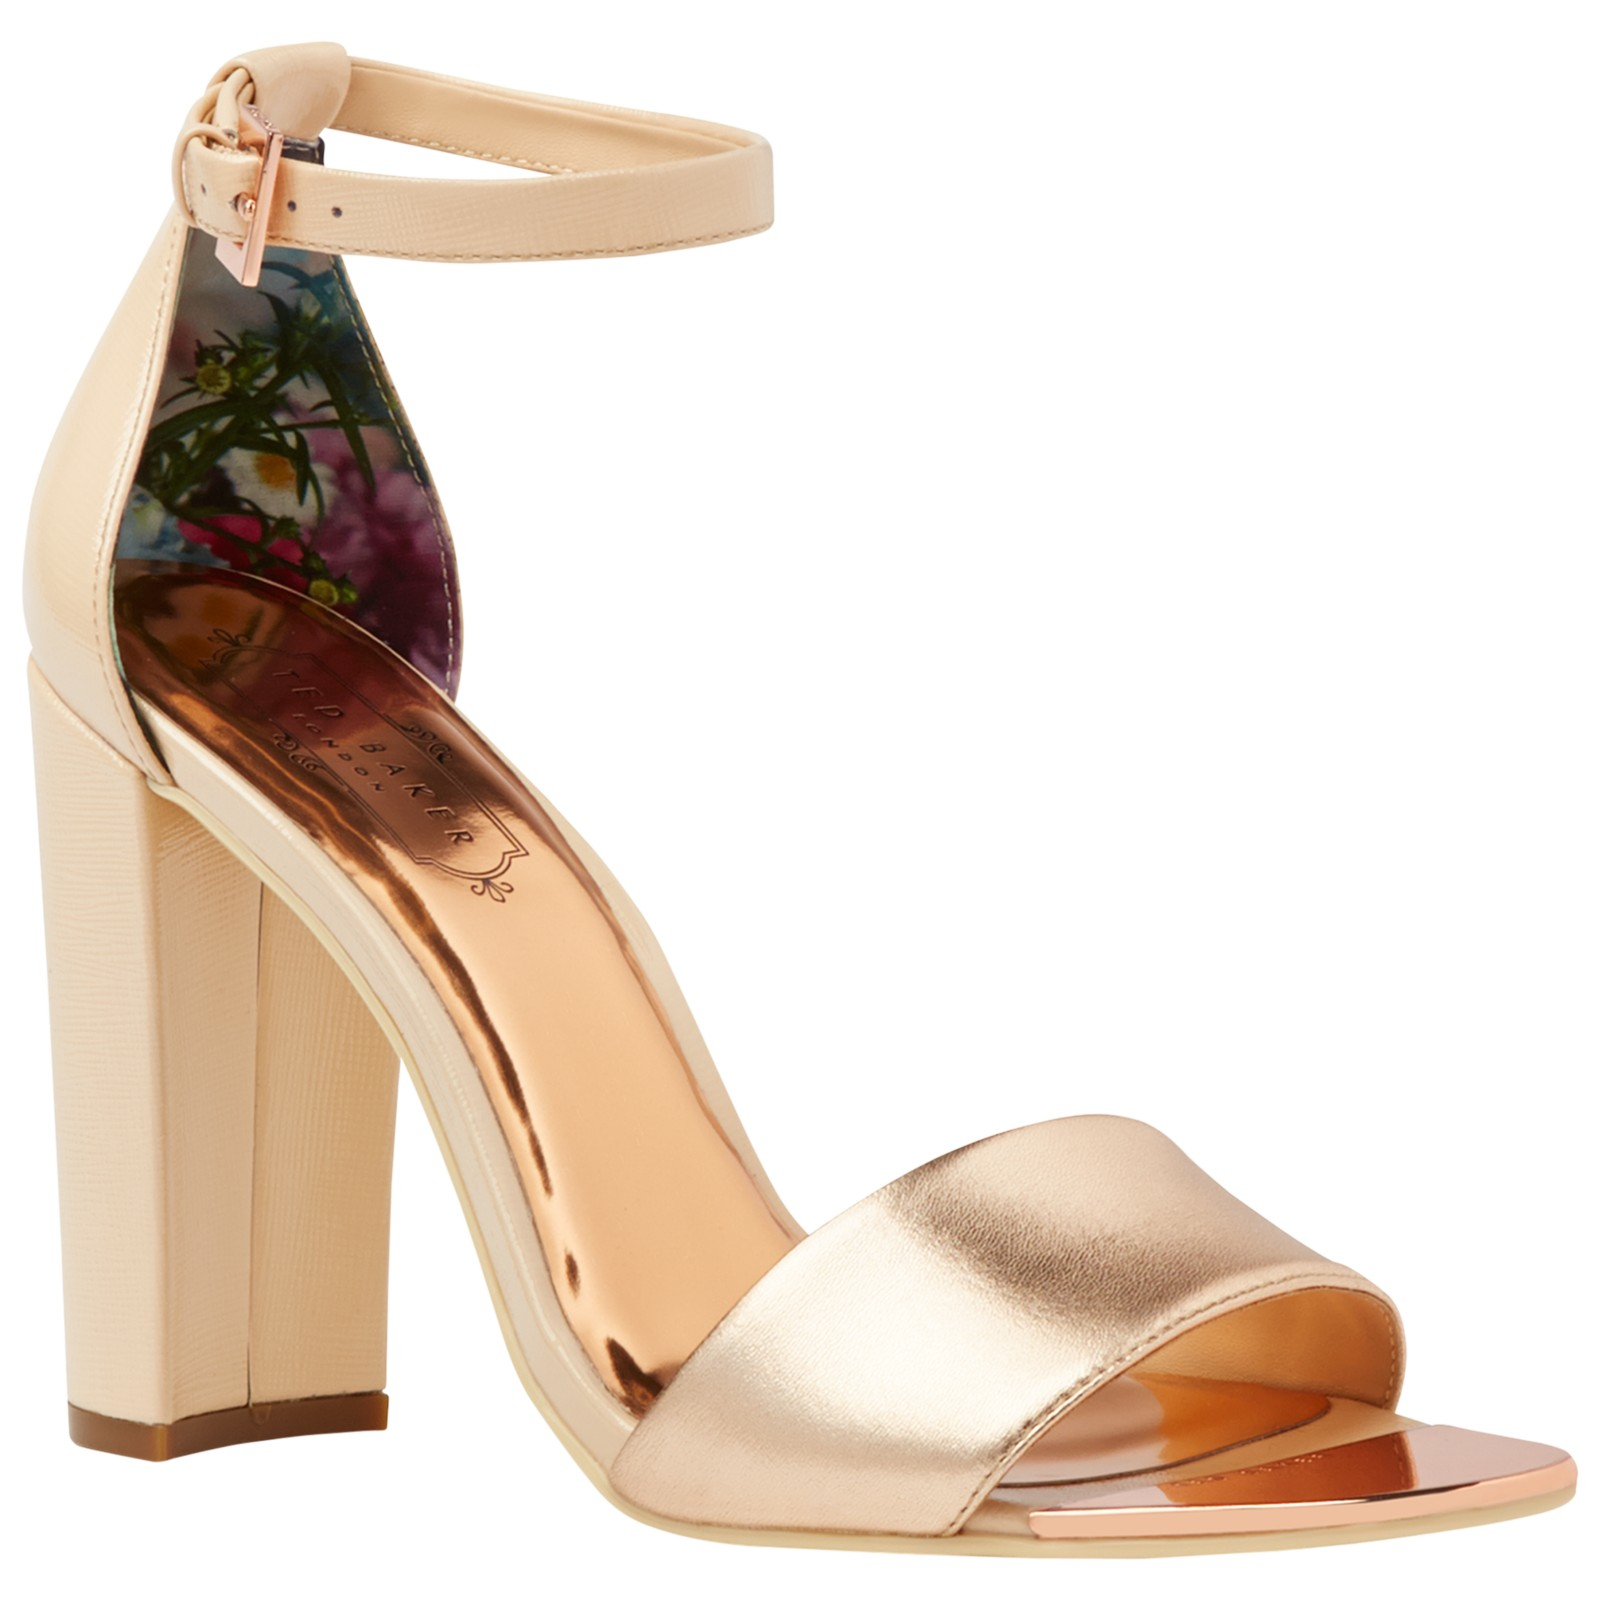 9078865cc68 Ted Baker Caiye Block Heeled Sandals in Metallic - Lyst